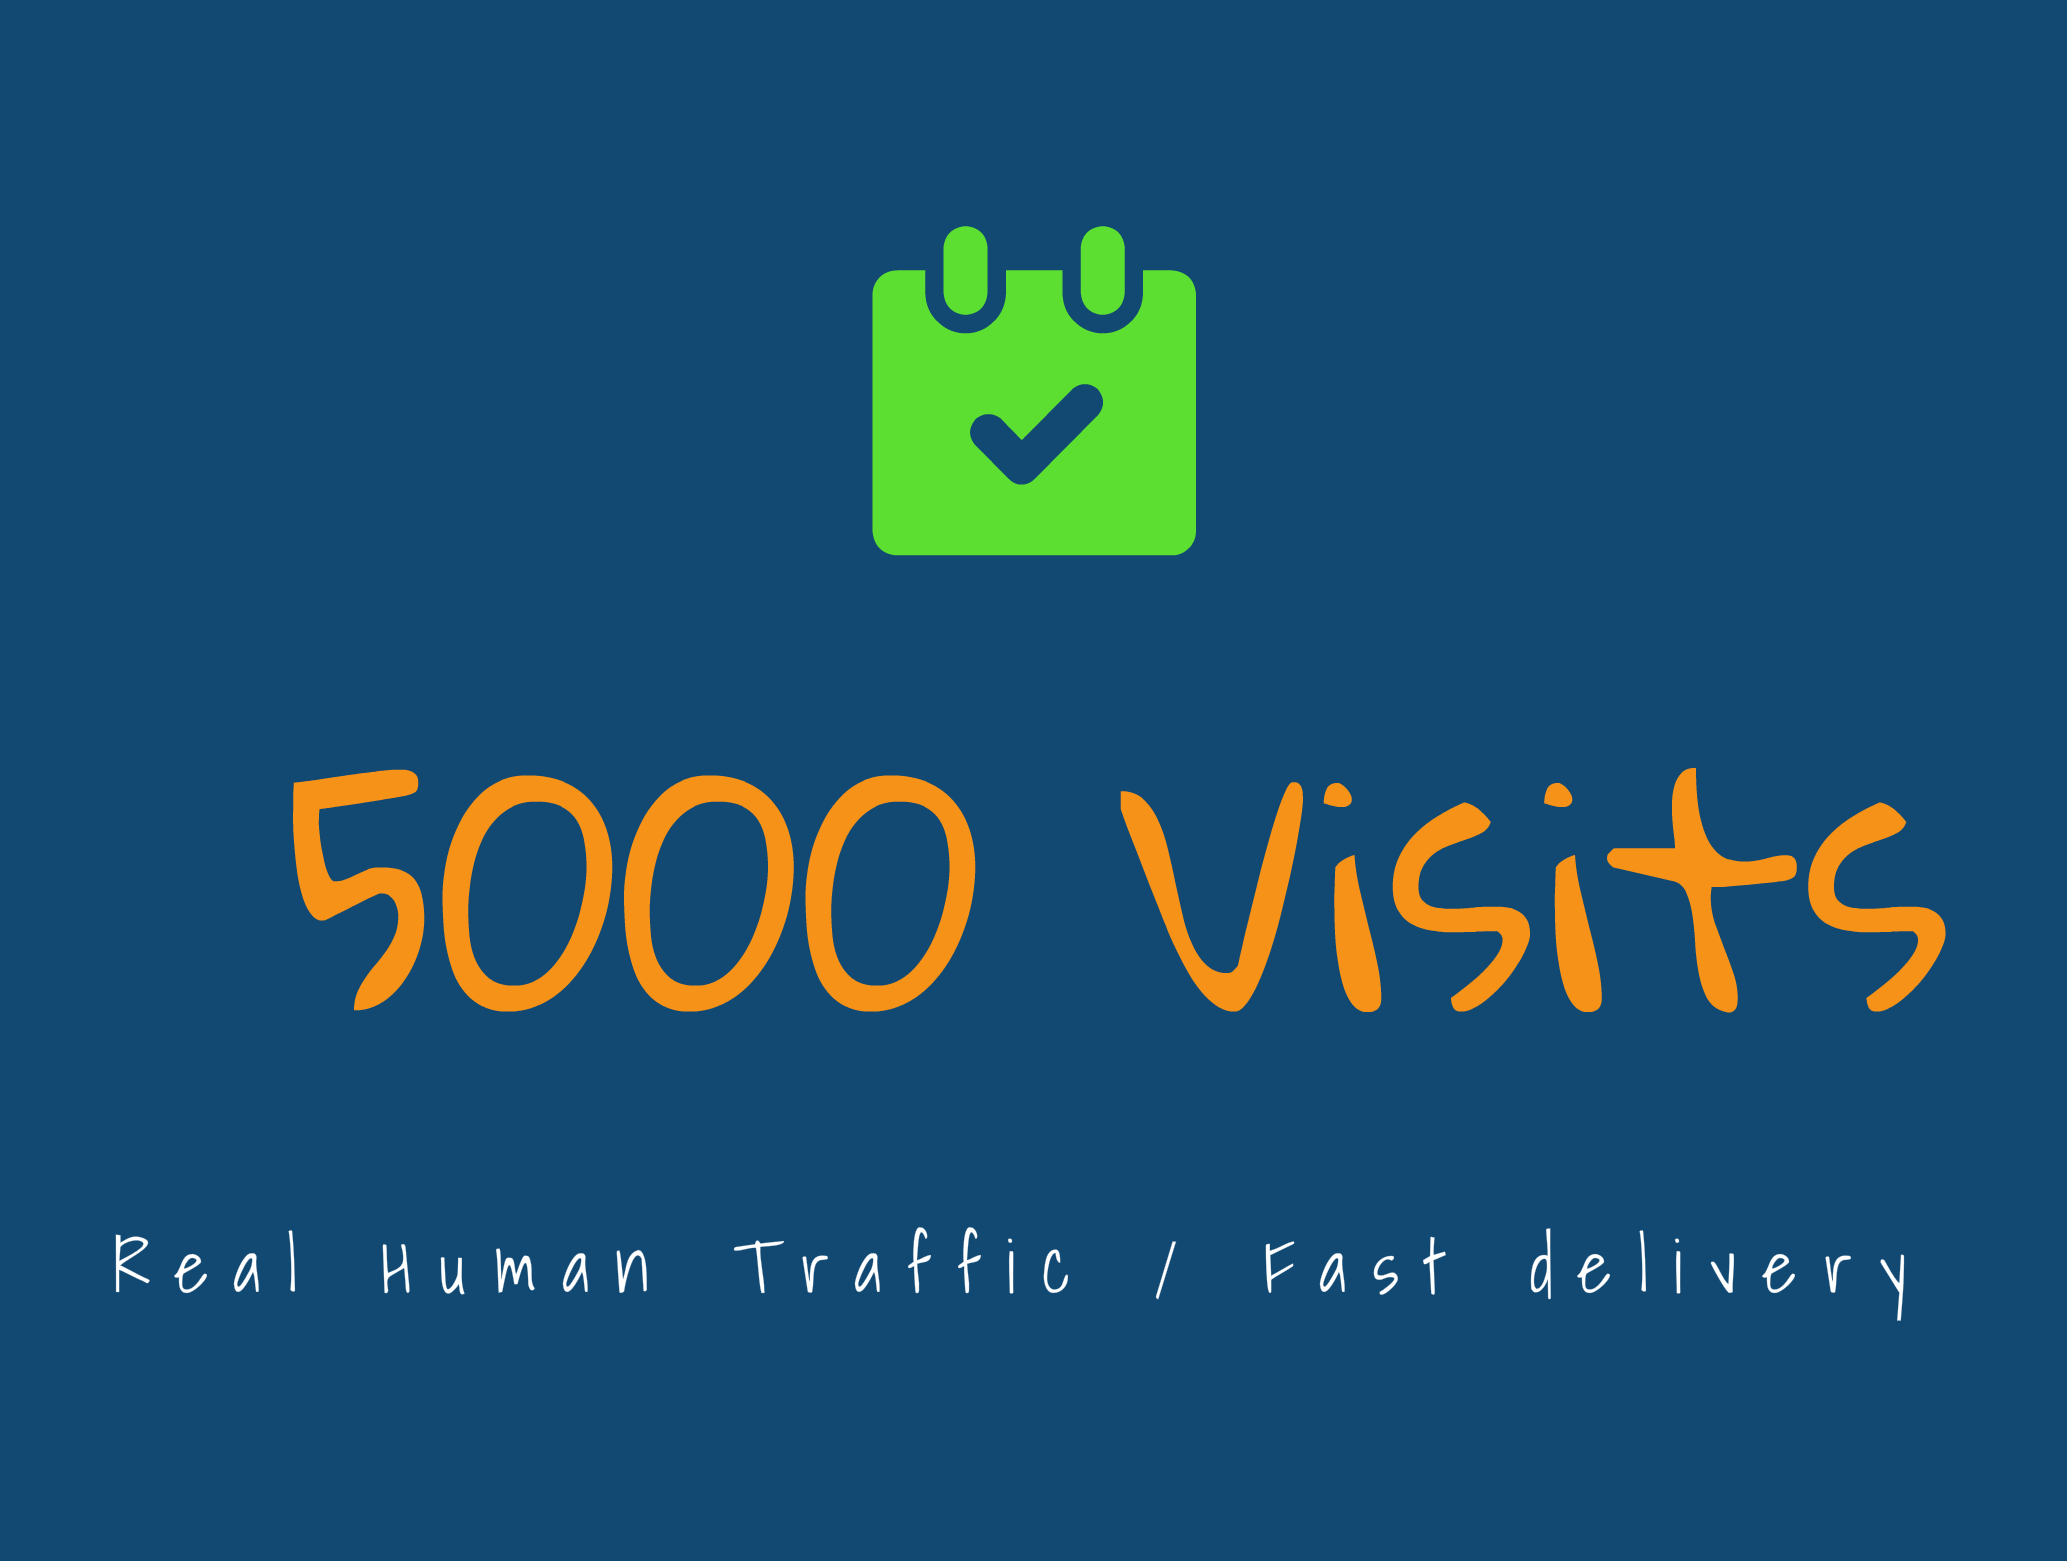 WEBSITE TRAFFIC - 5.000 VISITS